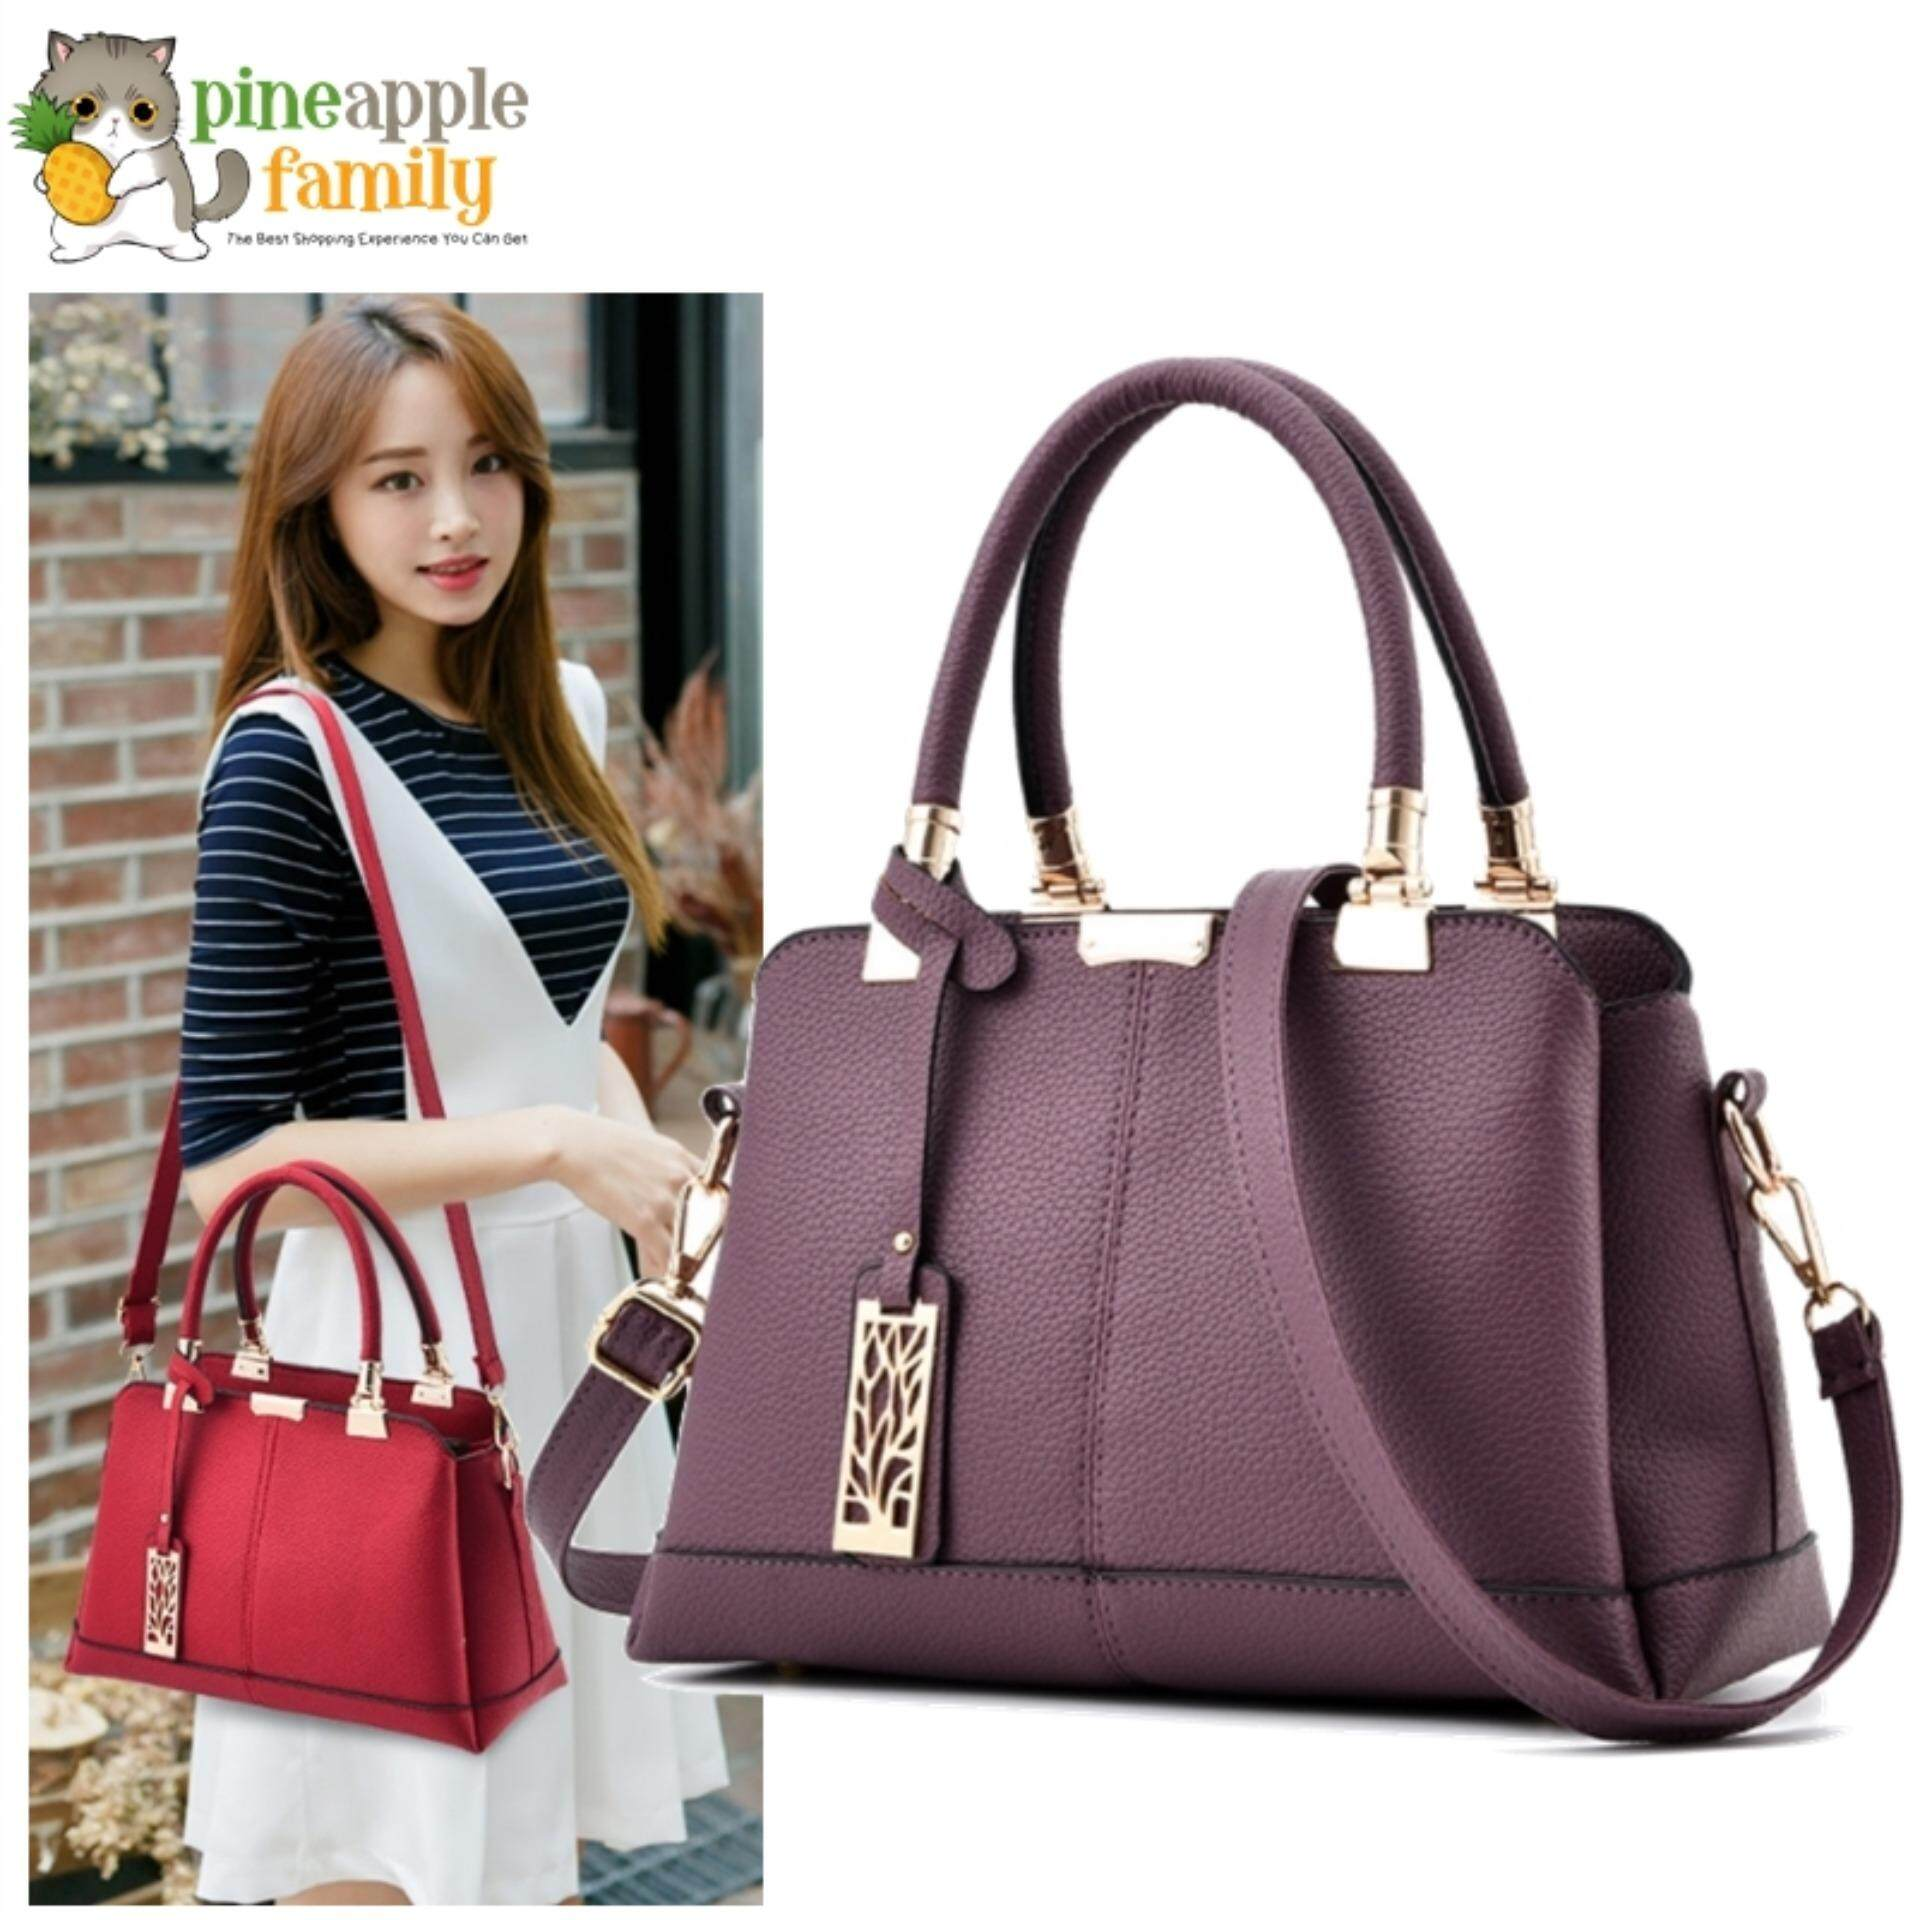 Malaysia Irati Pu Leather Elegant Style Tote Bag With Long Strap